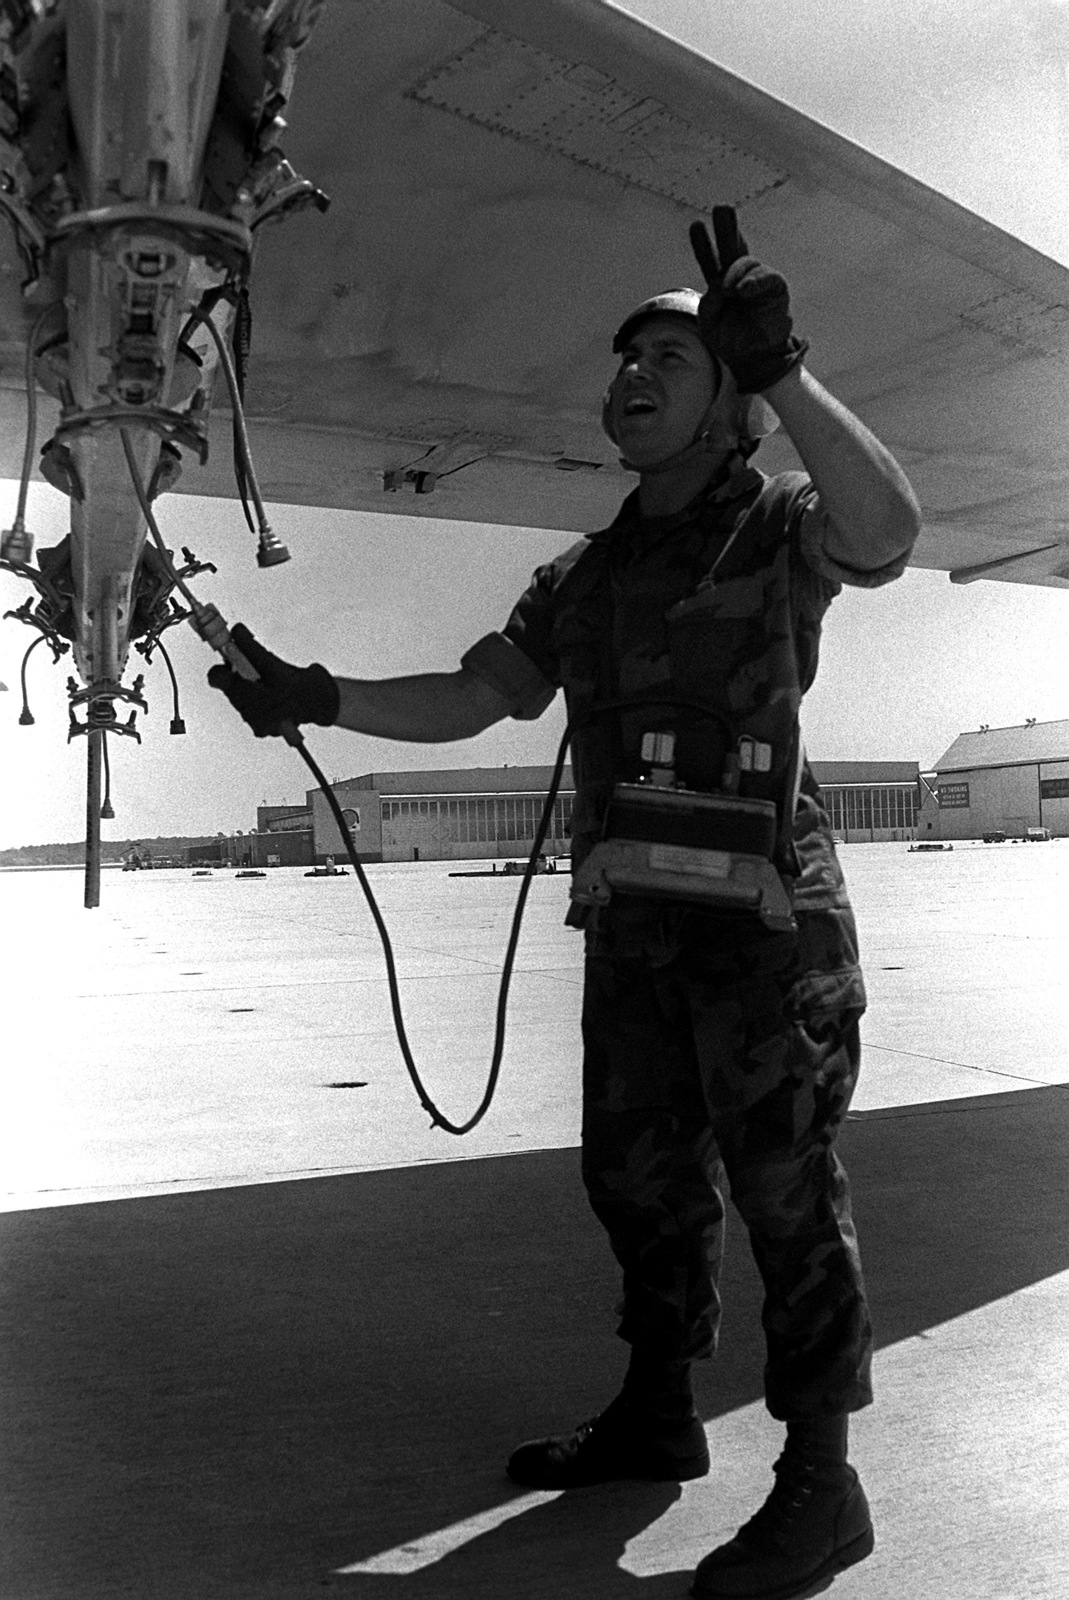 A member of Marine Attack Squadron 224 (VMA-224) signals to the cockpit while using an AN/AWM-54 aircraft firing circuit test set to test a multiple ejector rack (MER) on the wing of an A-6E Intruder aircraft